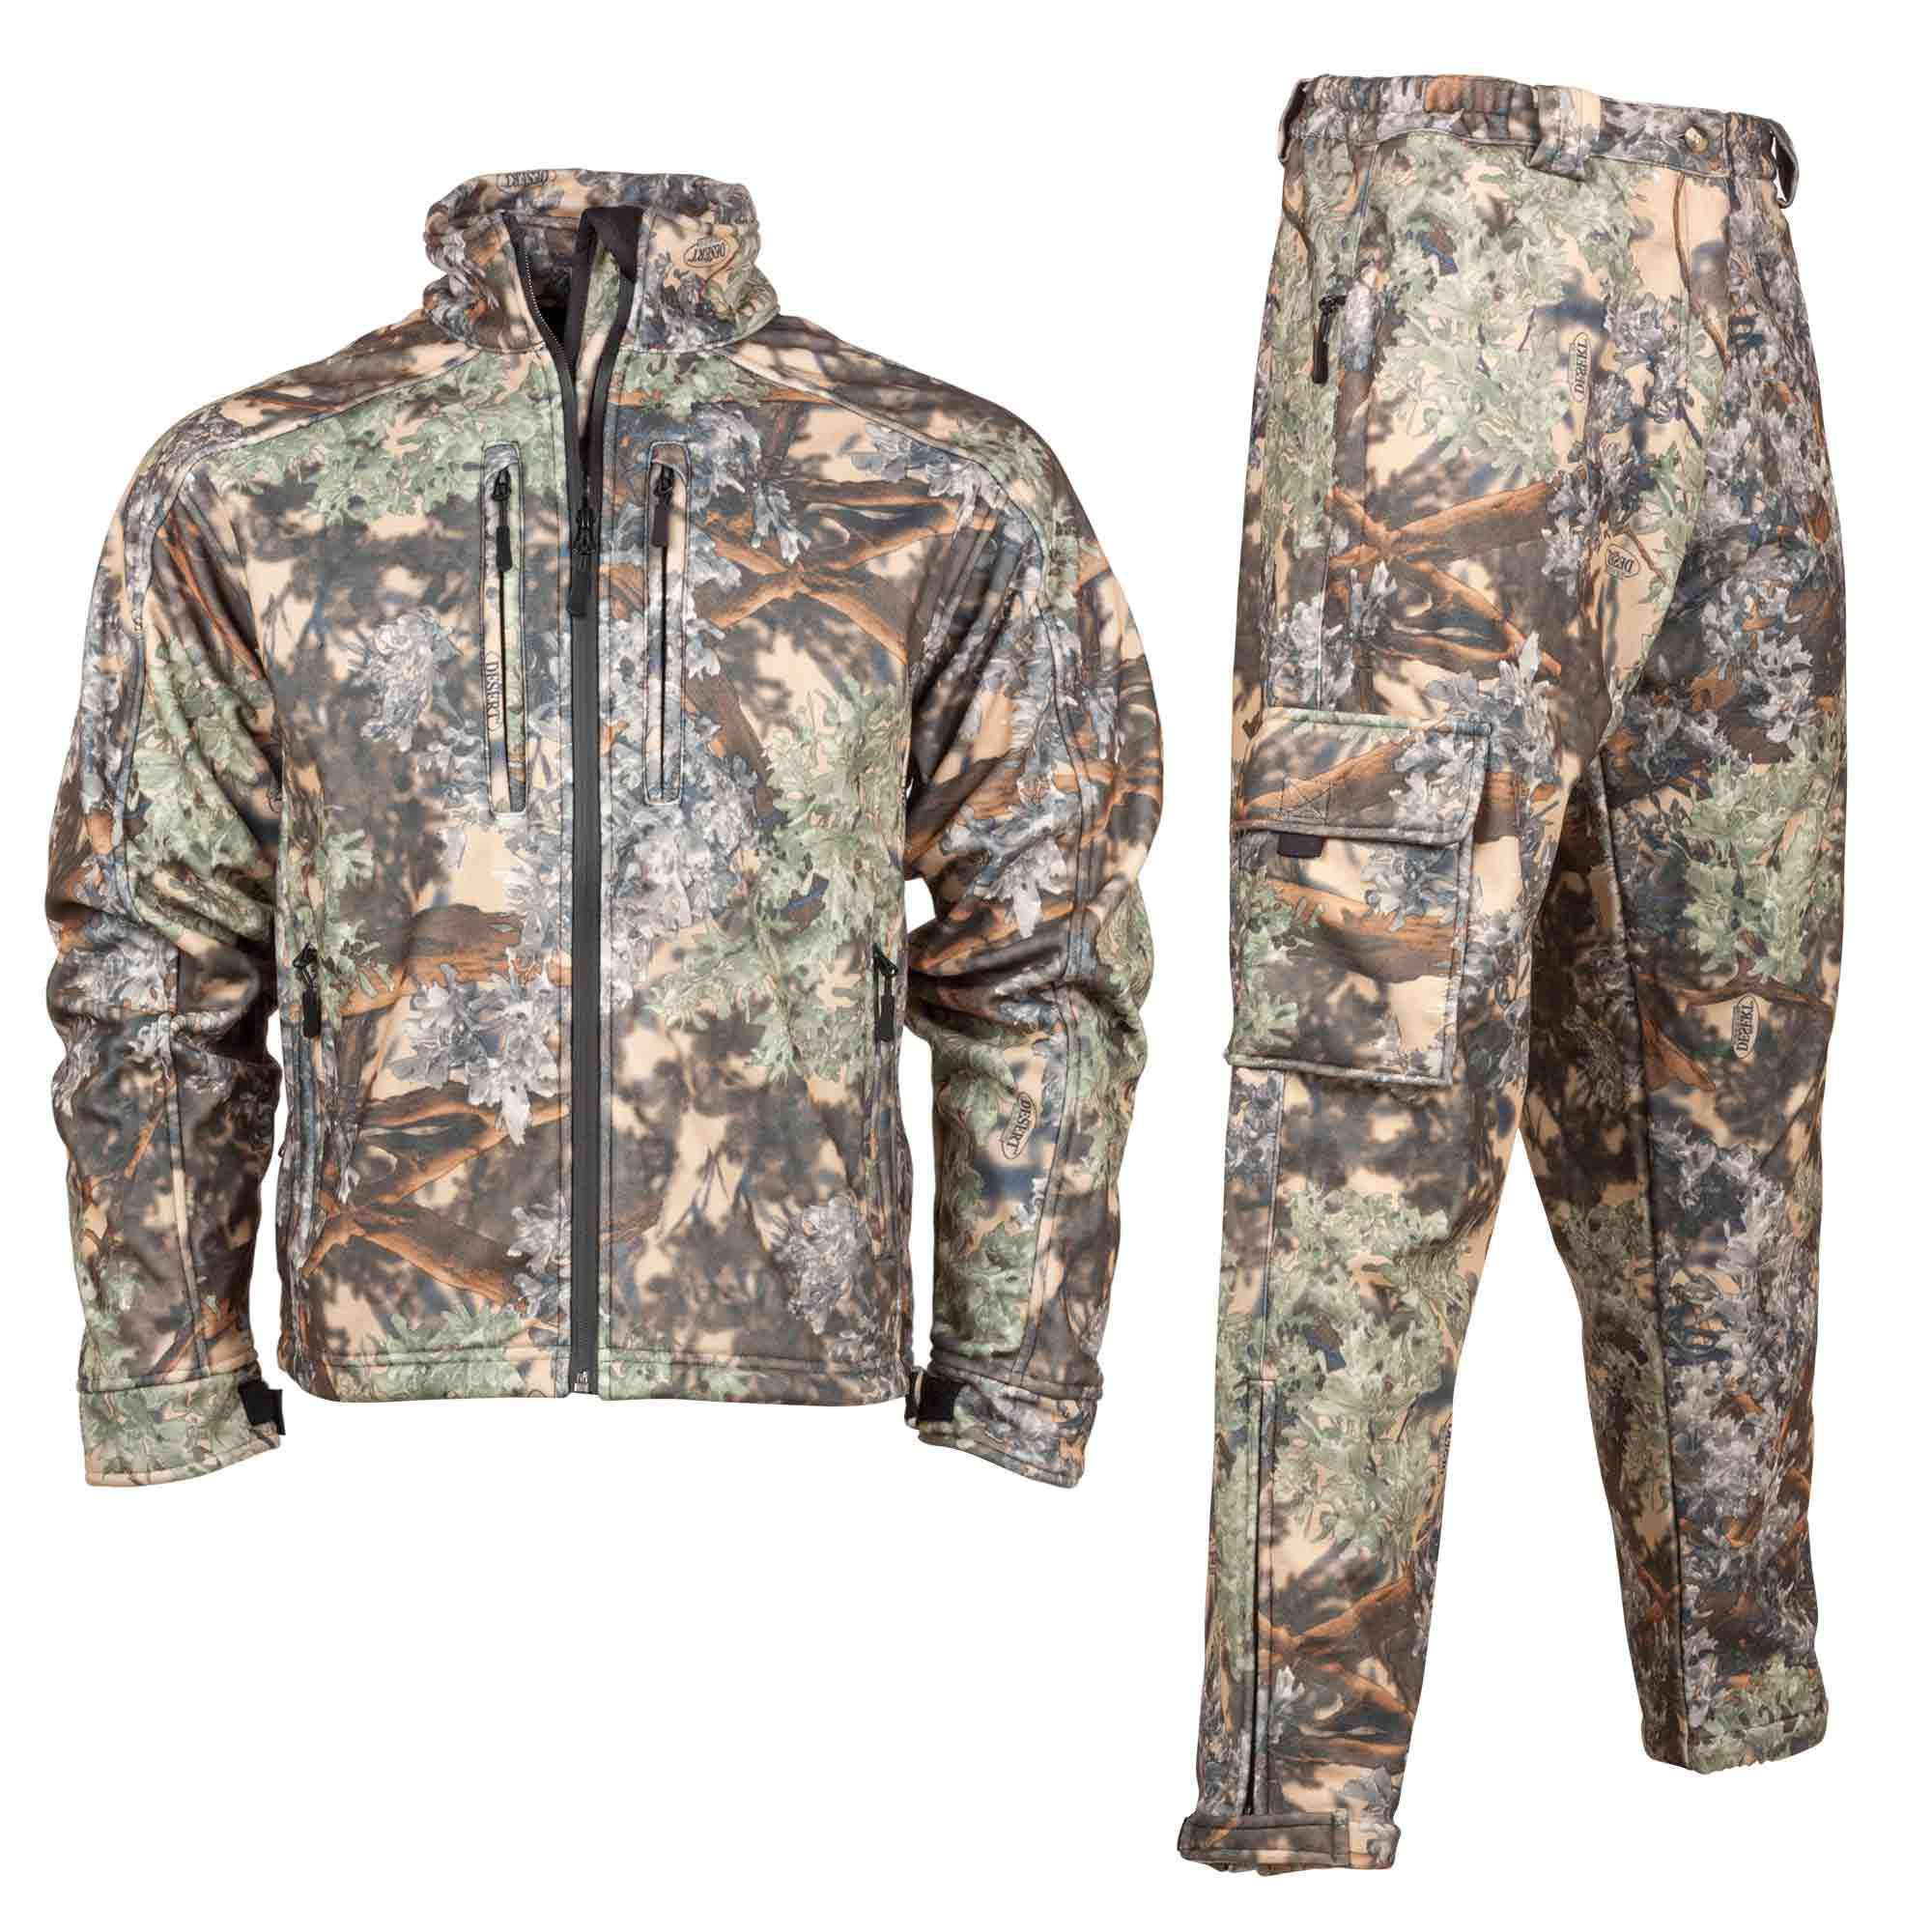 8a599485aecf2 Guide's Choice Storm Fleece Bundle in Desert Shadow® | King's Camo